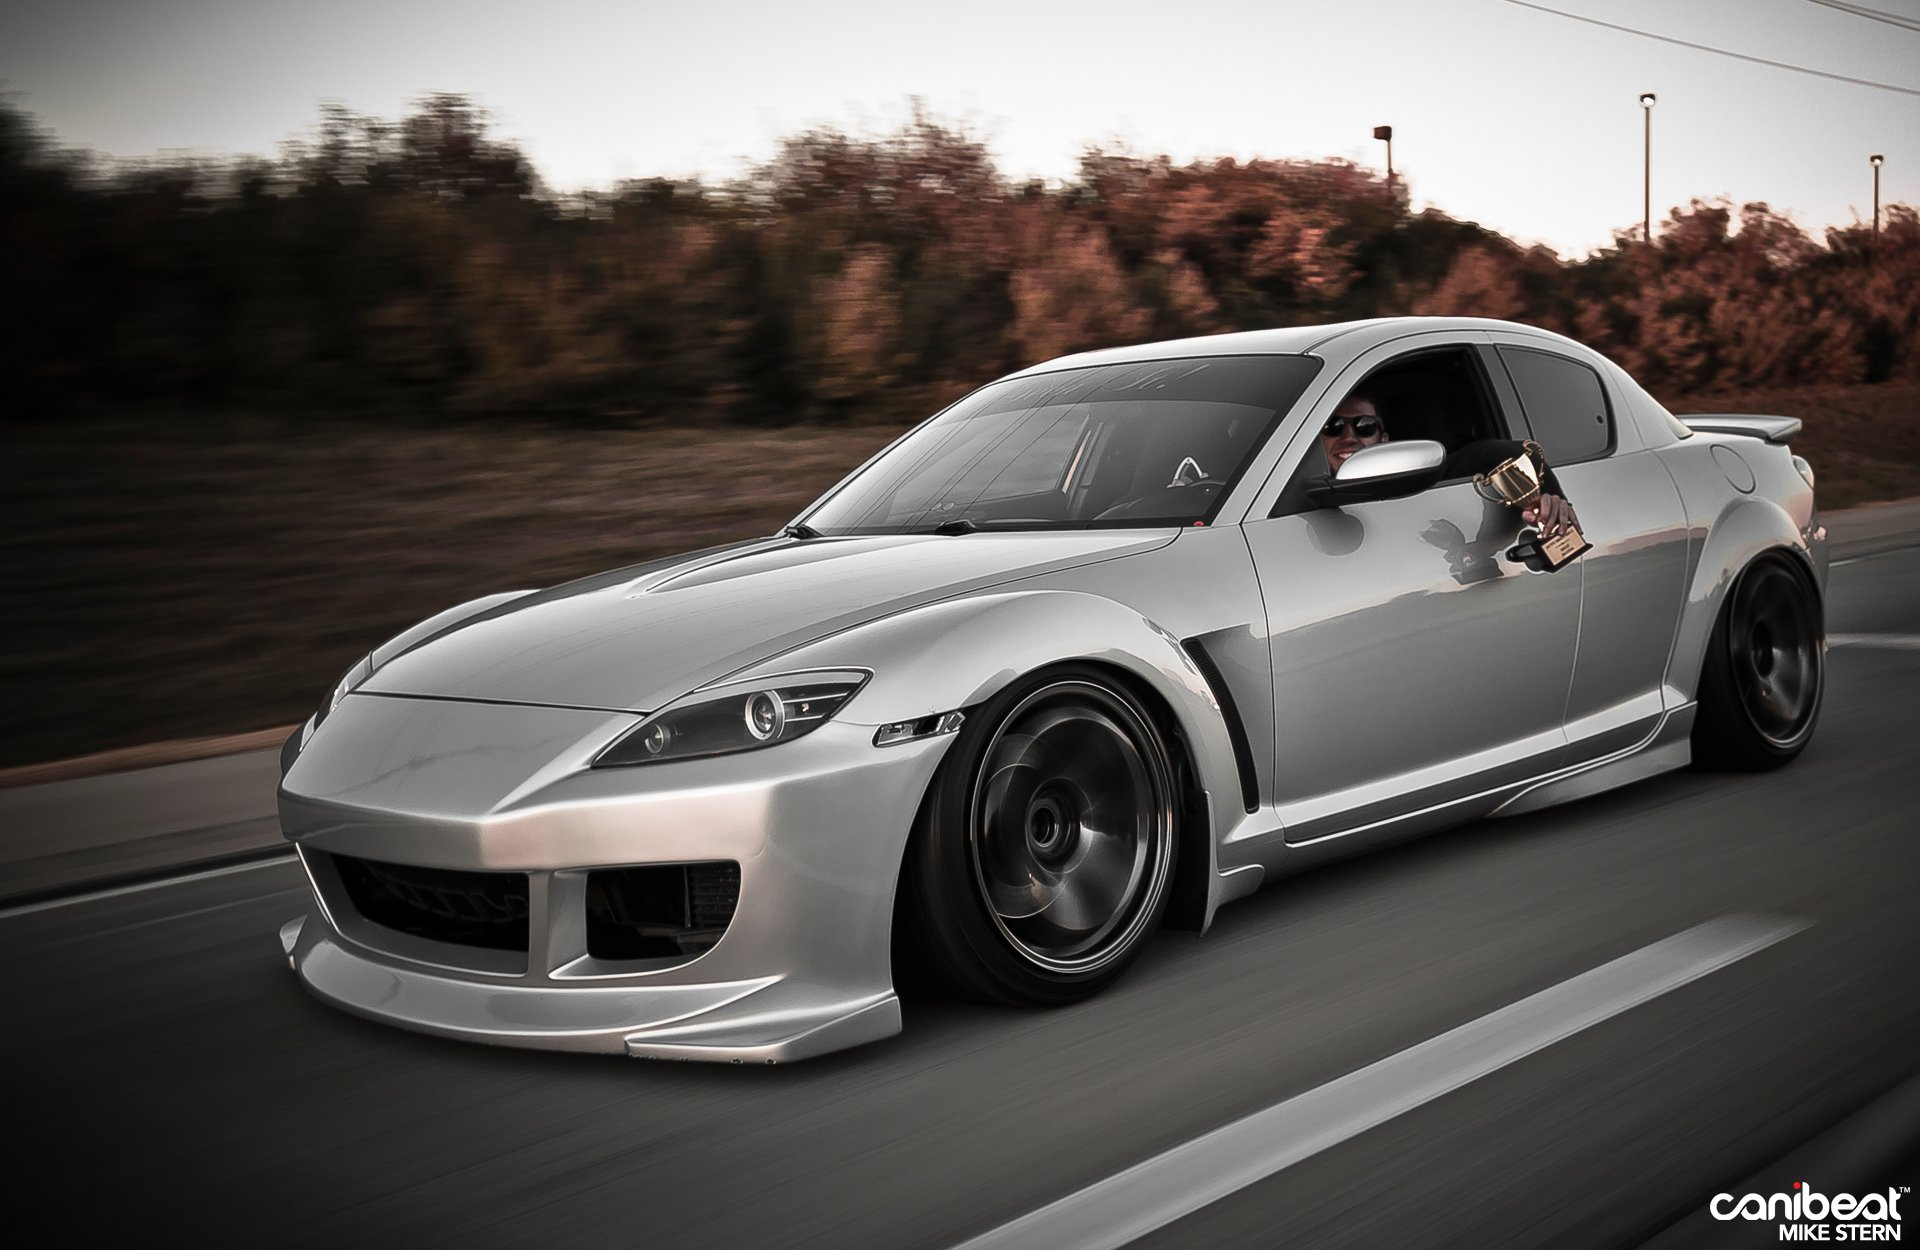 mazda rx8 coupe tuning japan body kit cars wallpaper 1920x1250 498799 wallpaperup. Black Bedroom Furniture Sets. Home Design Ideas